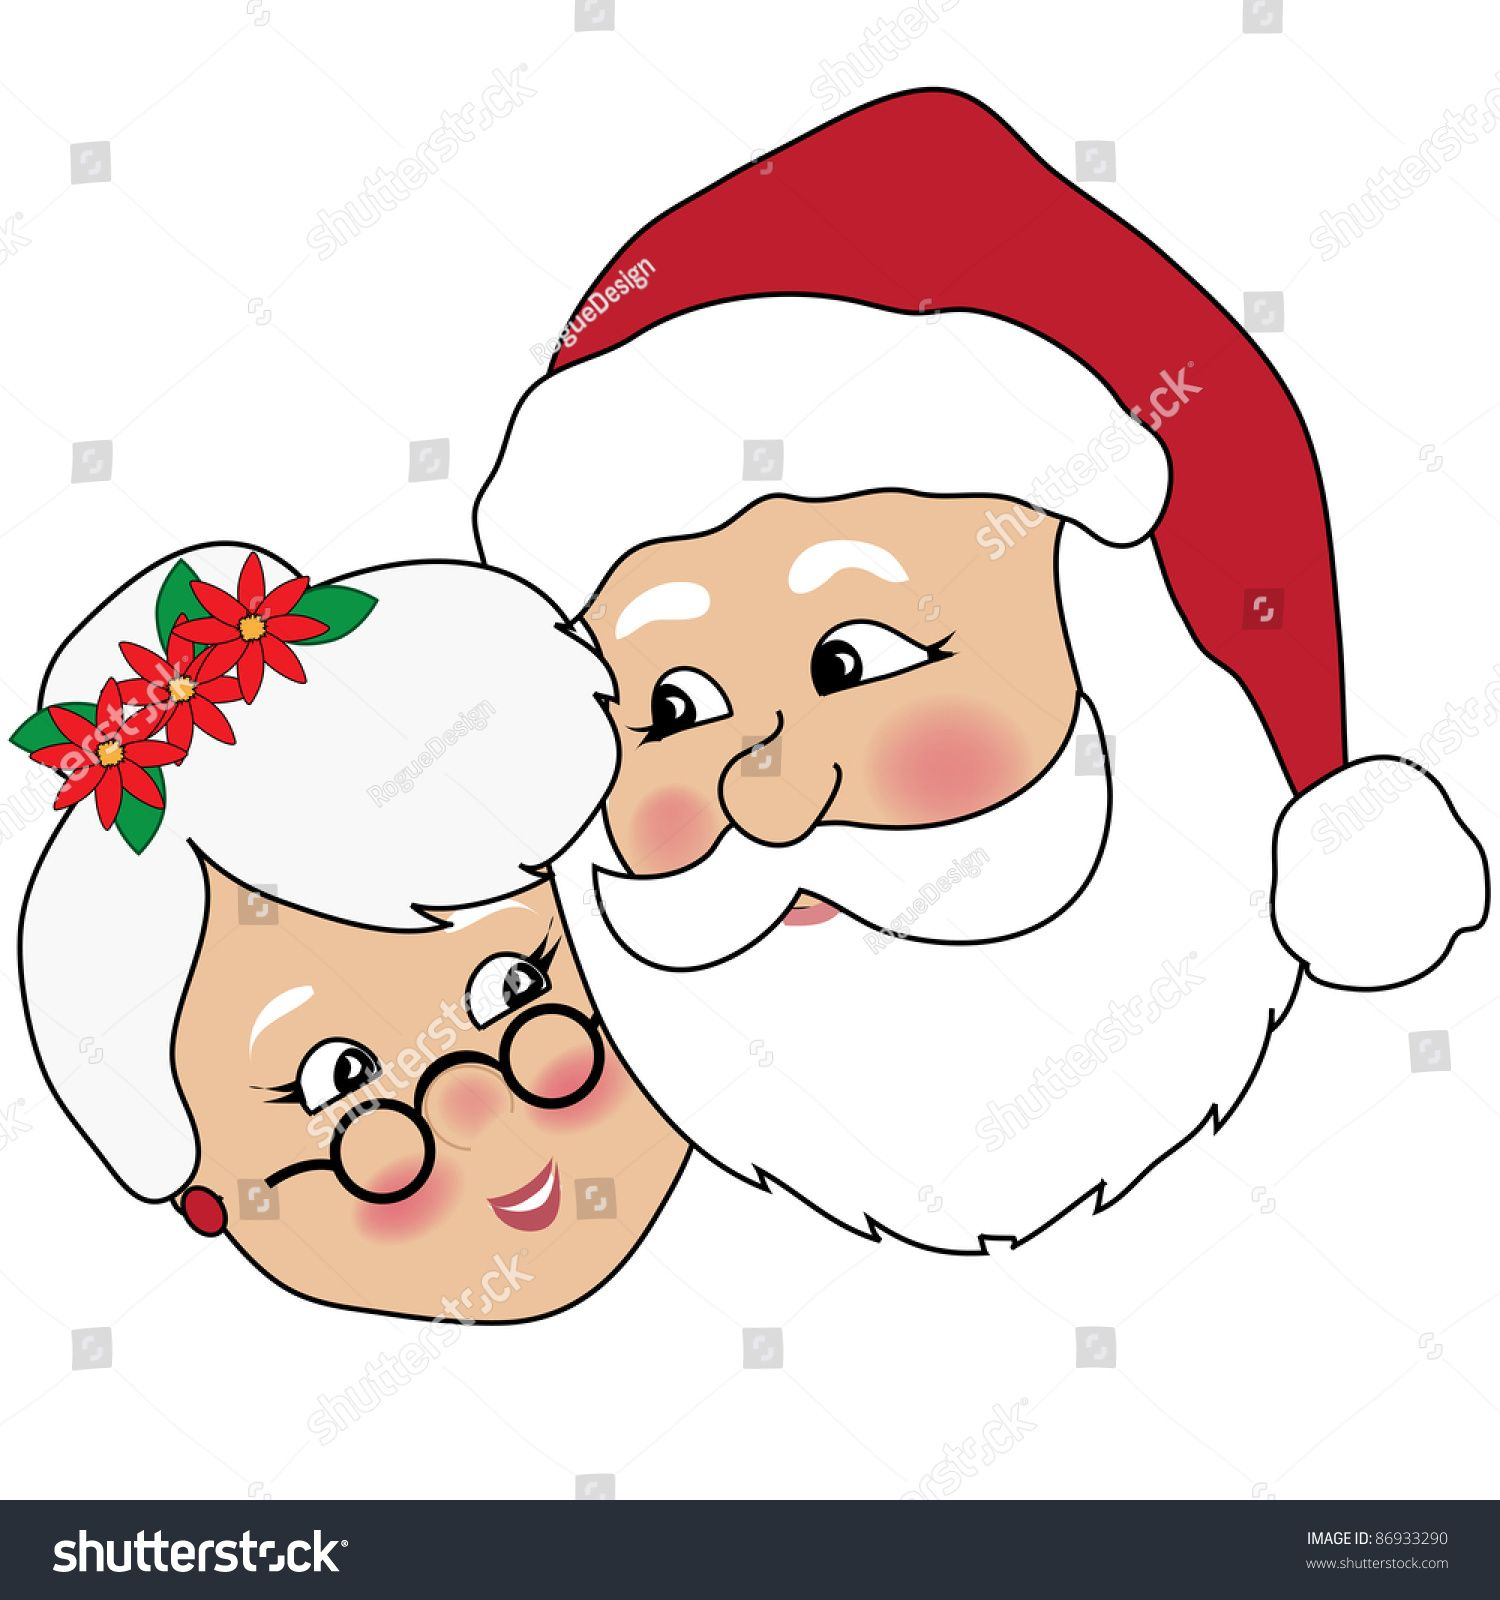 Santa and mrs claus clipart